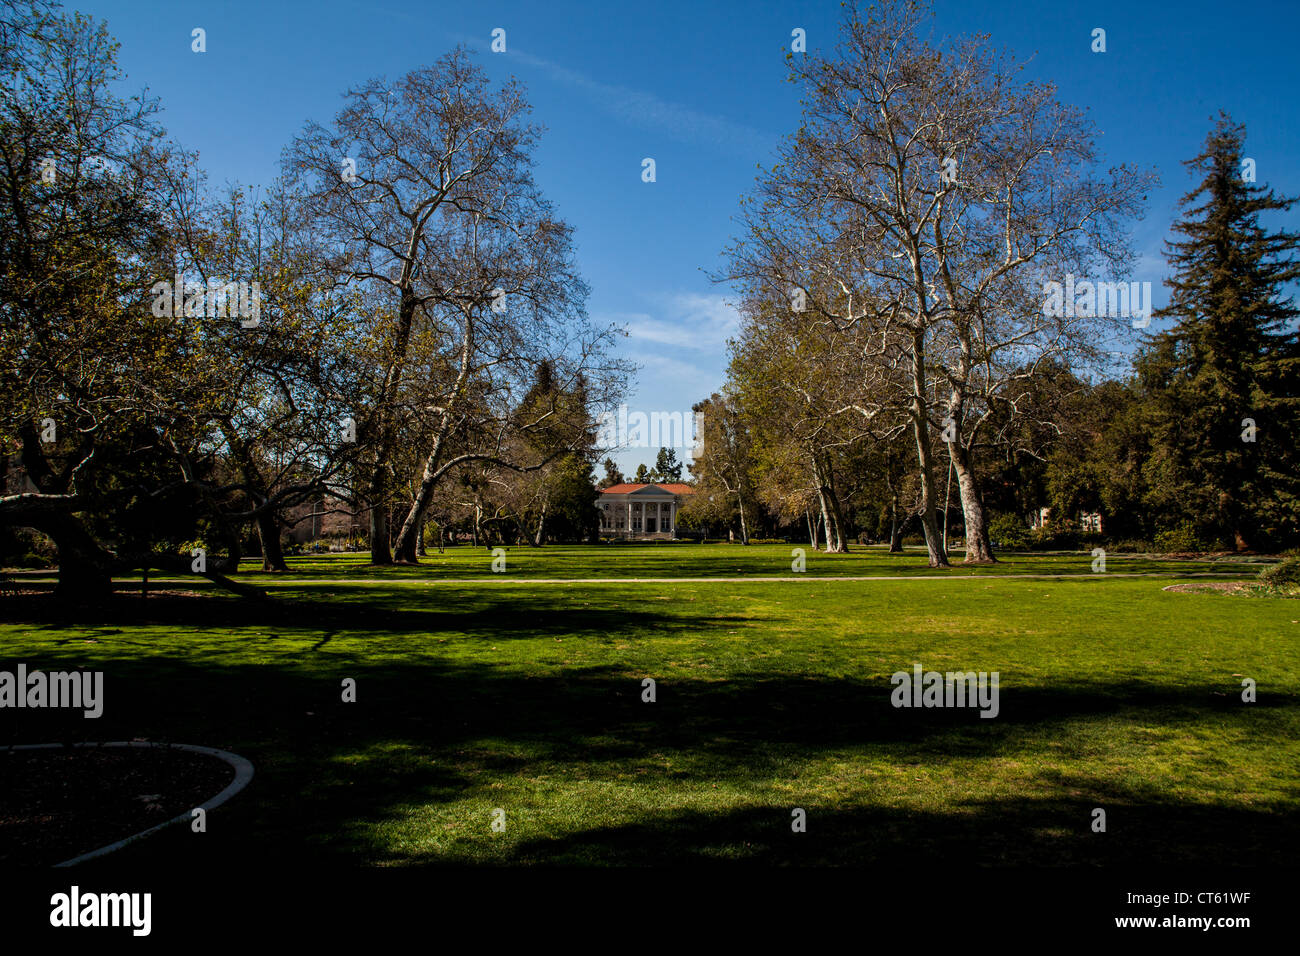 Marston quadrangle and the Carnegie building at Pomona College part of the Claremont Colleges in California - Stock Image